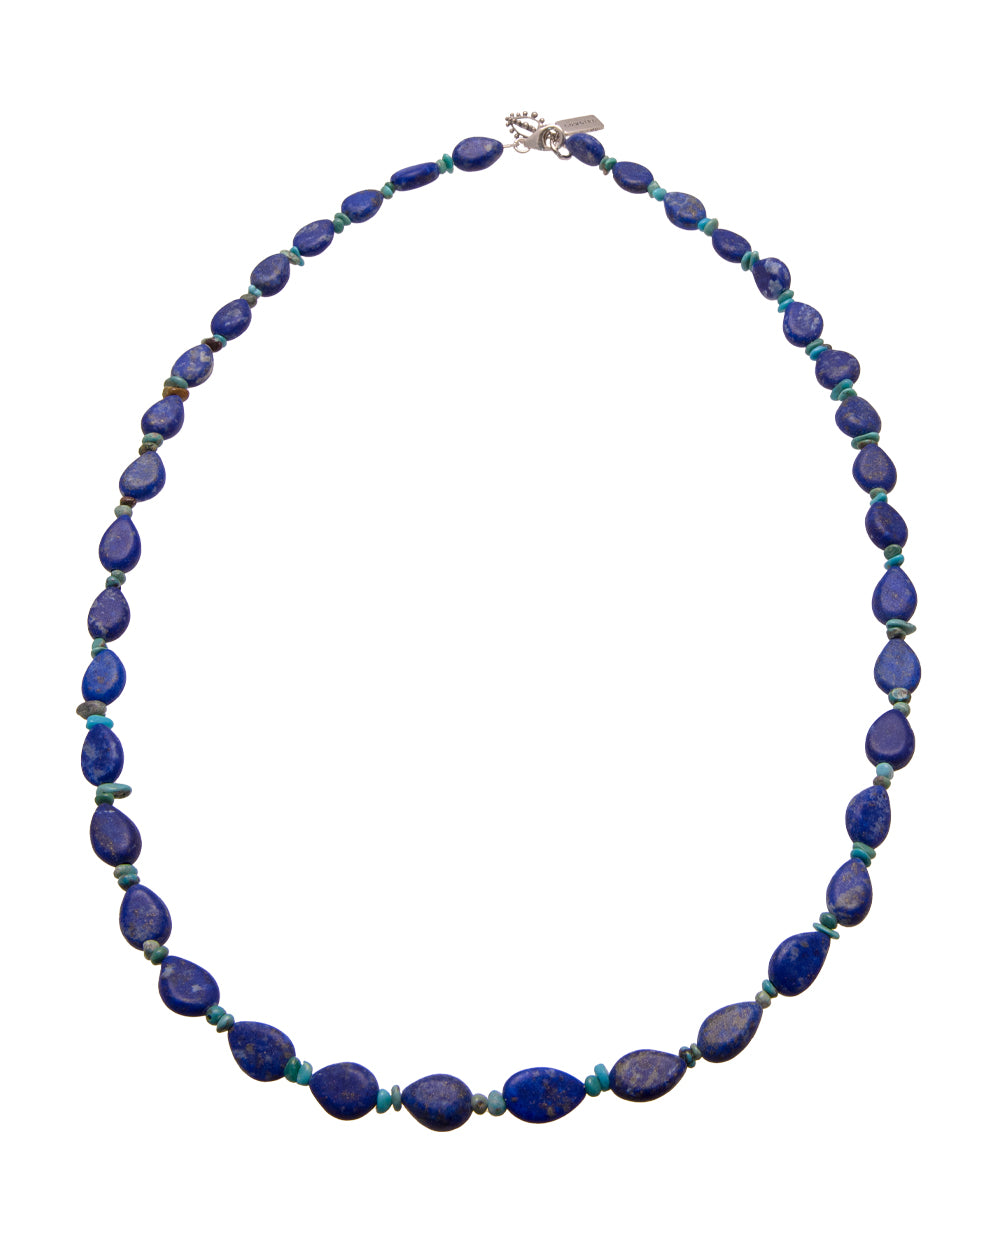 NIGHTFALL NECKLACE